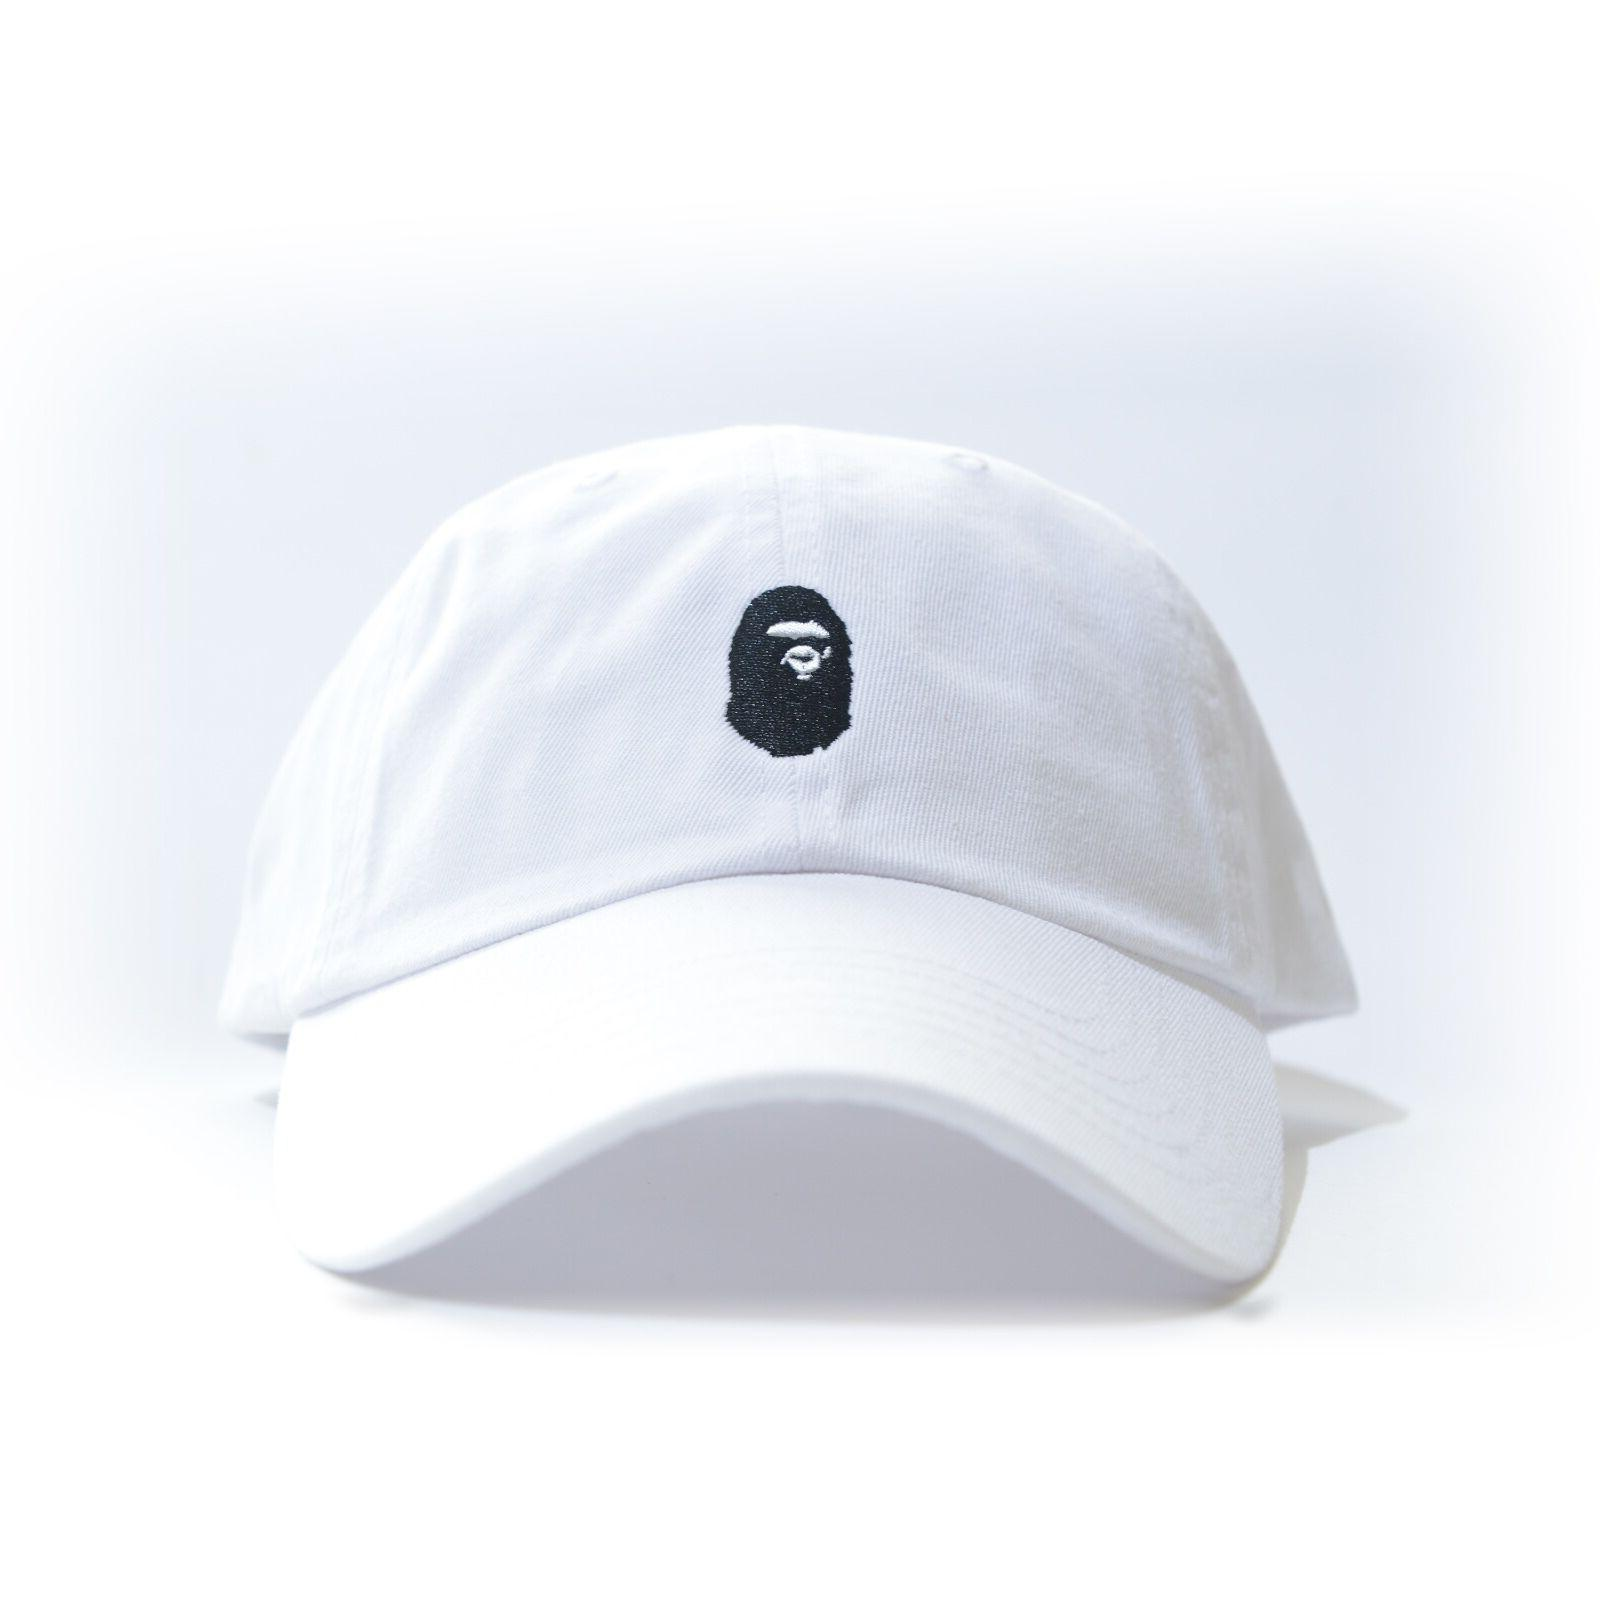 bape embroidered dad hat bathing ape head